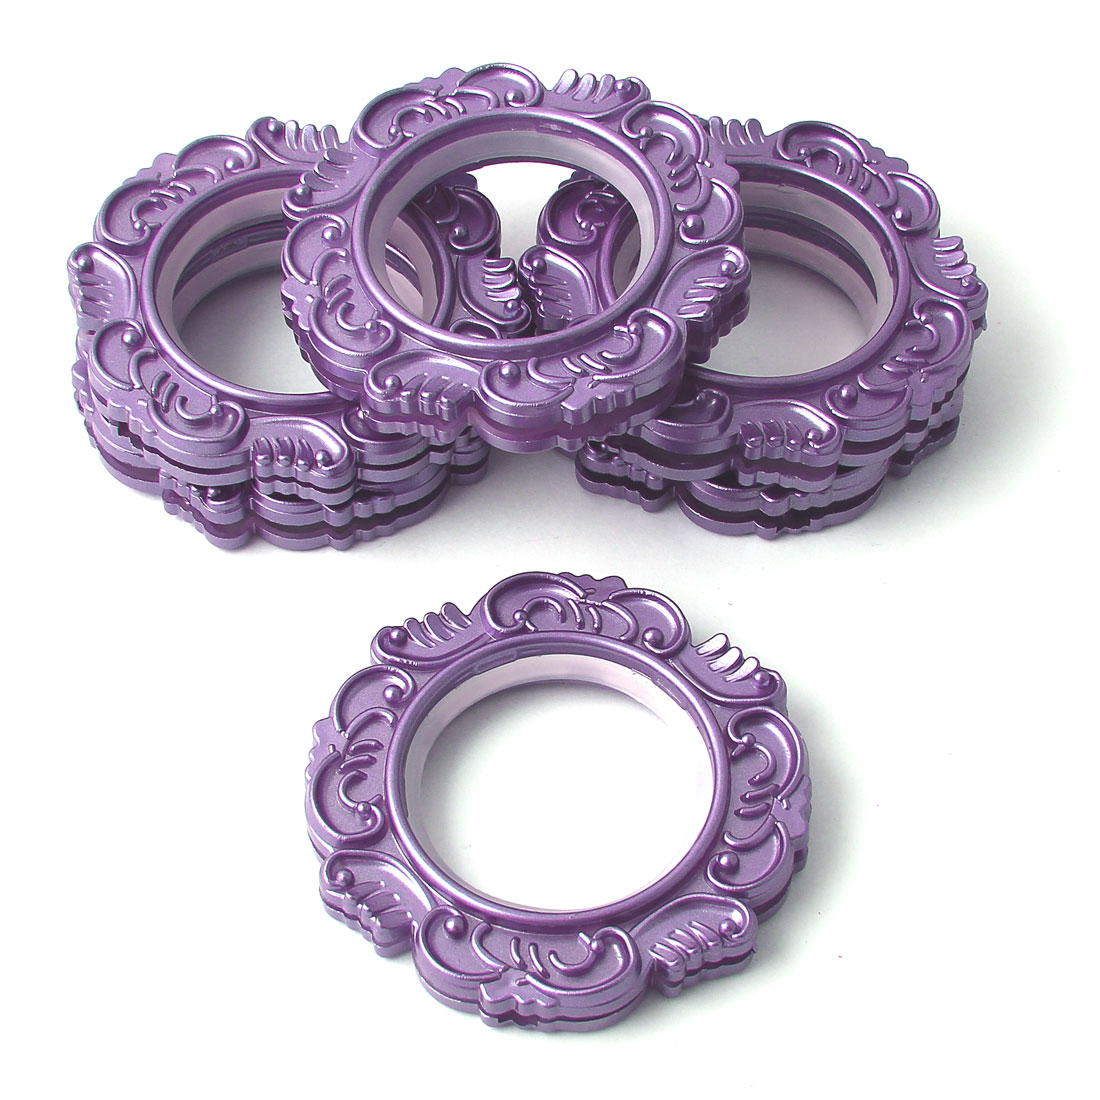 Household Purple Foral Print Plastic Round Curtain Rings 45mm Inside Dia 6 Pcs